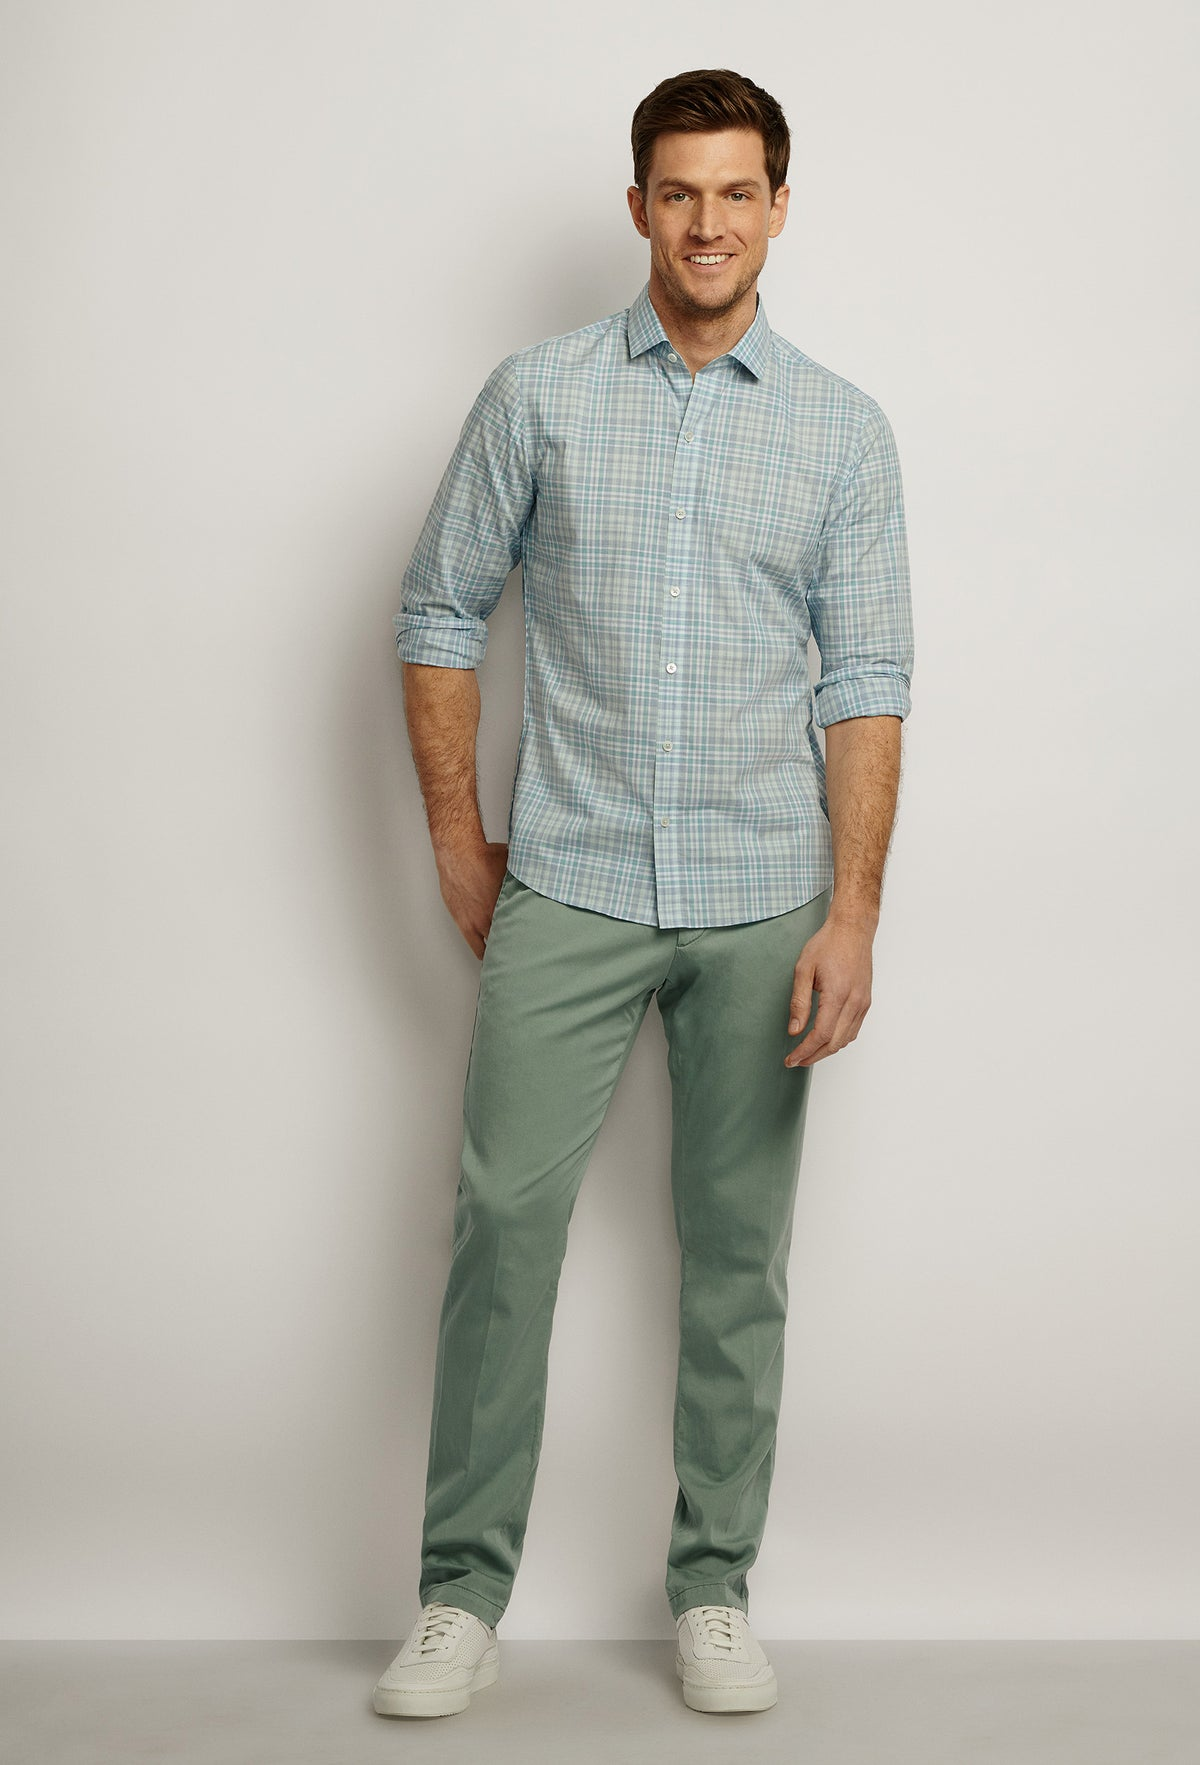 ZACHARY-PRELL-Zamora-ShirtsModern-Menswear-New-Dress-Code